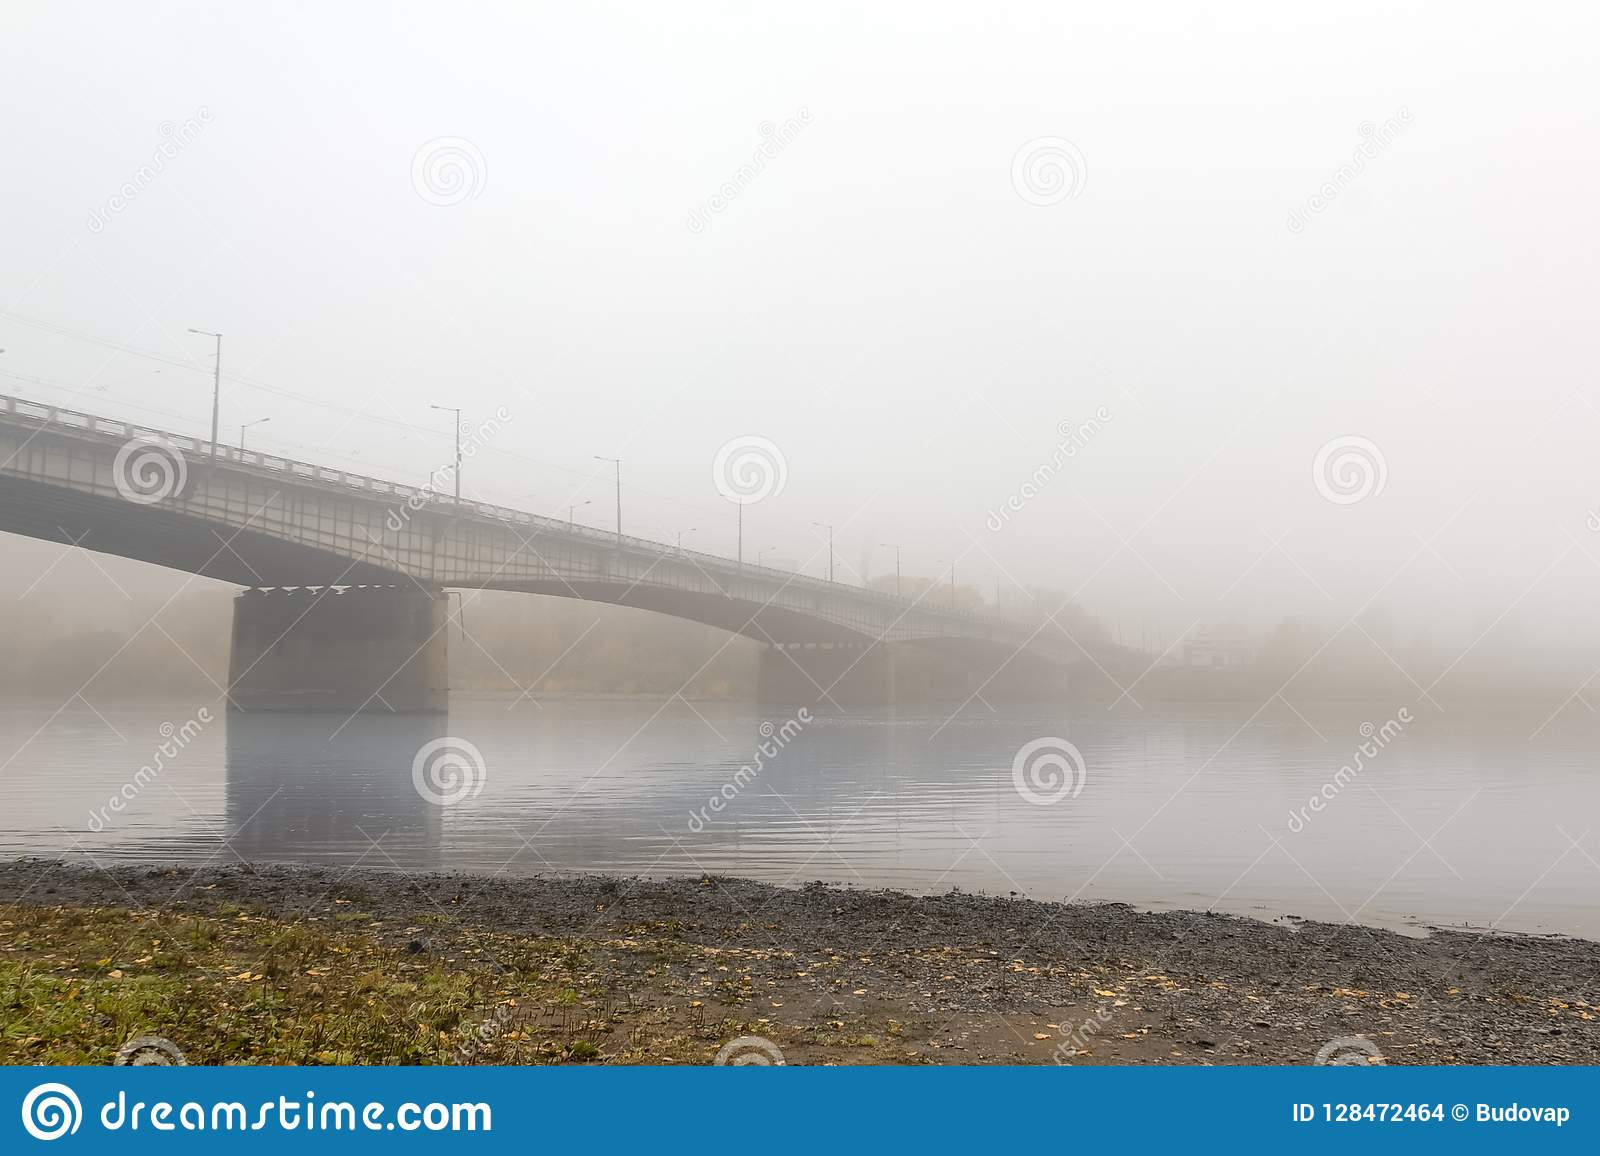 Automobile big bridge stretched across a calm river, wrapped in